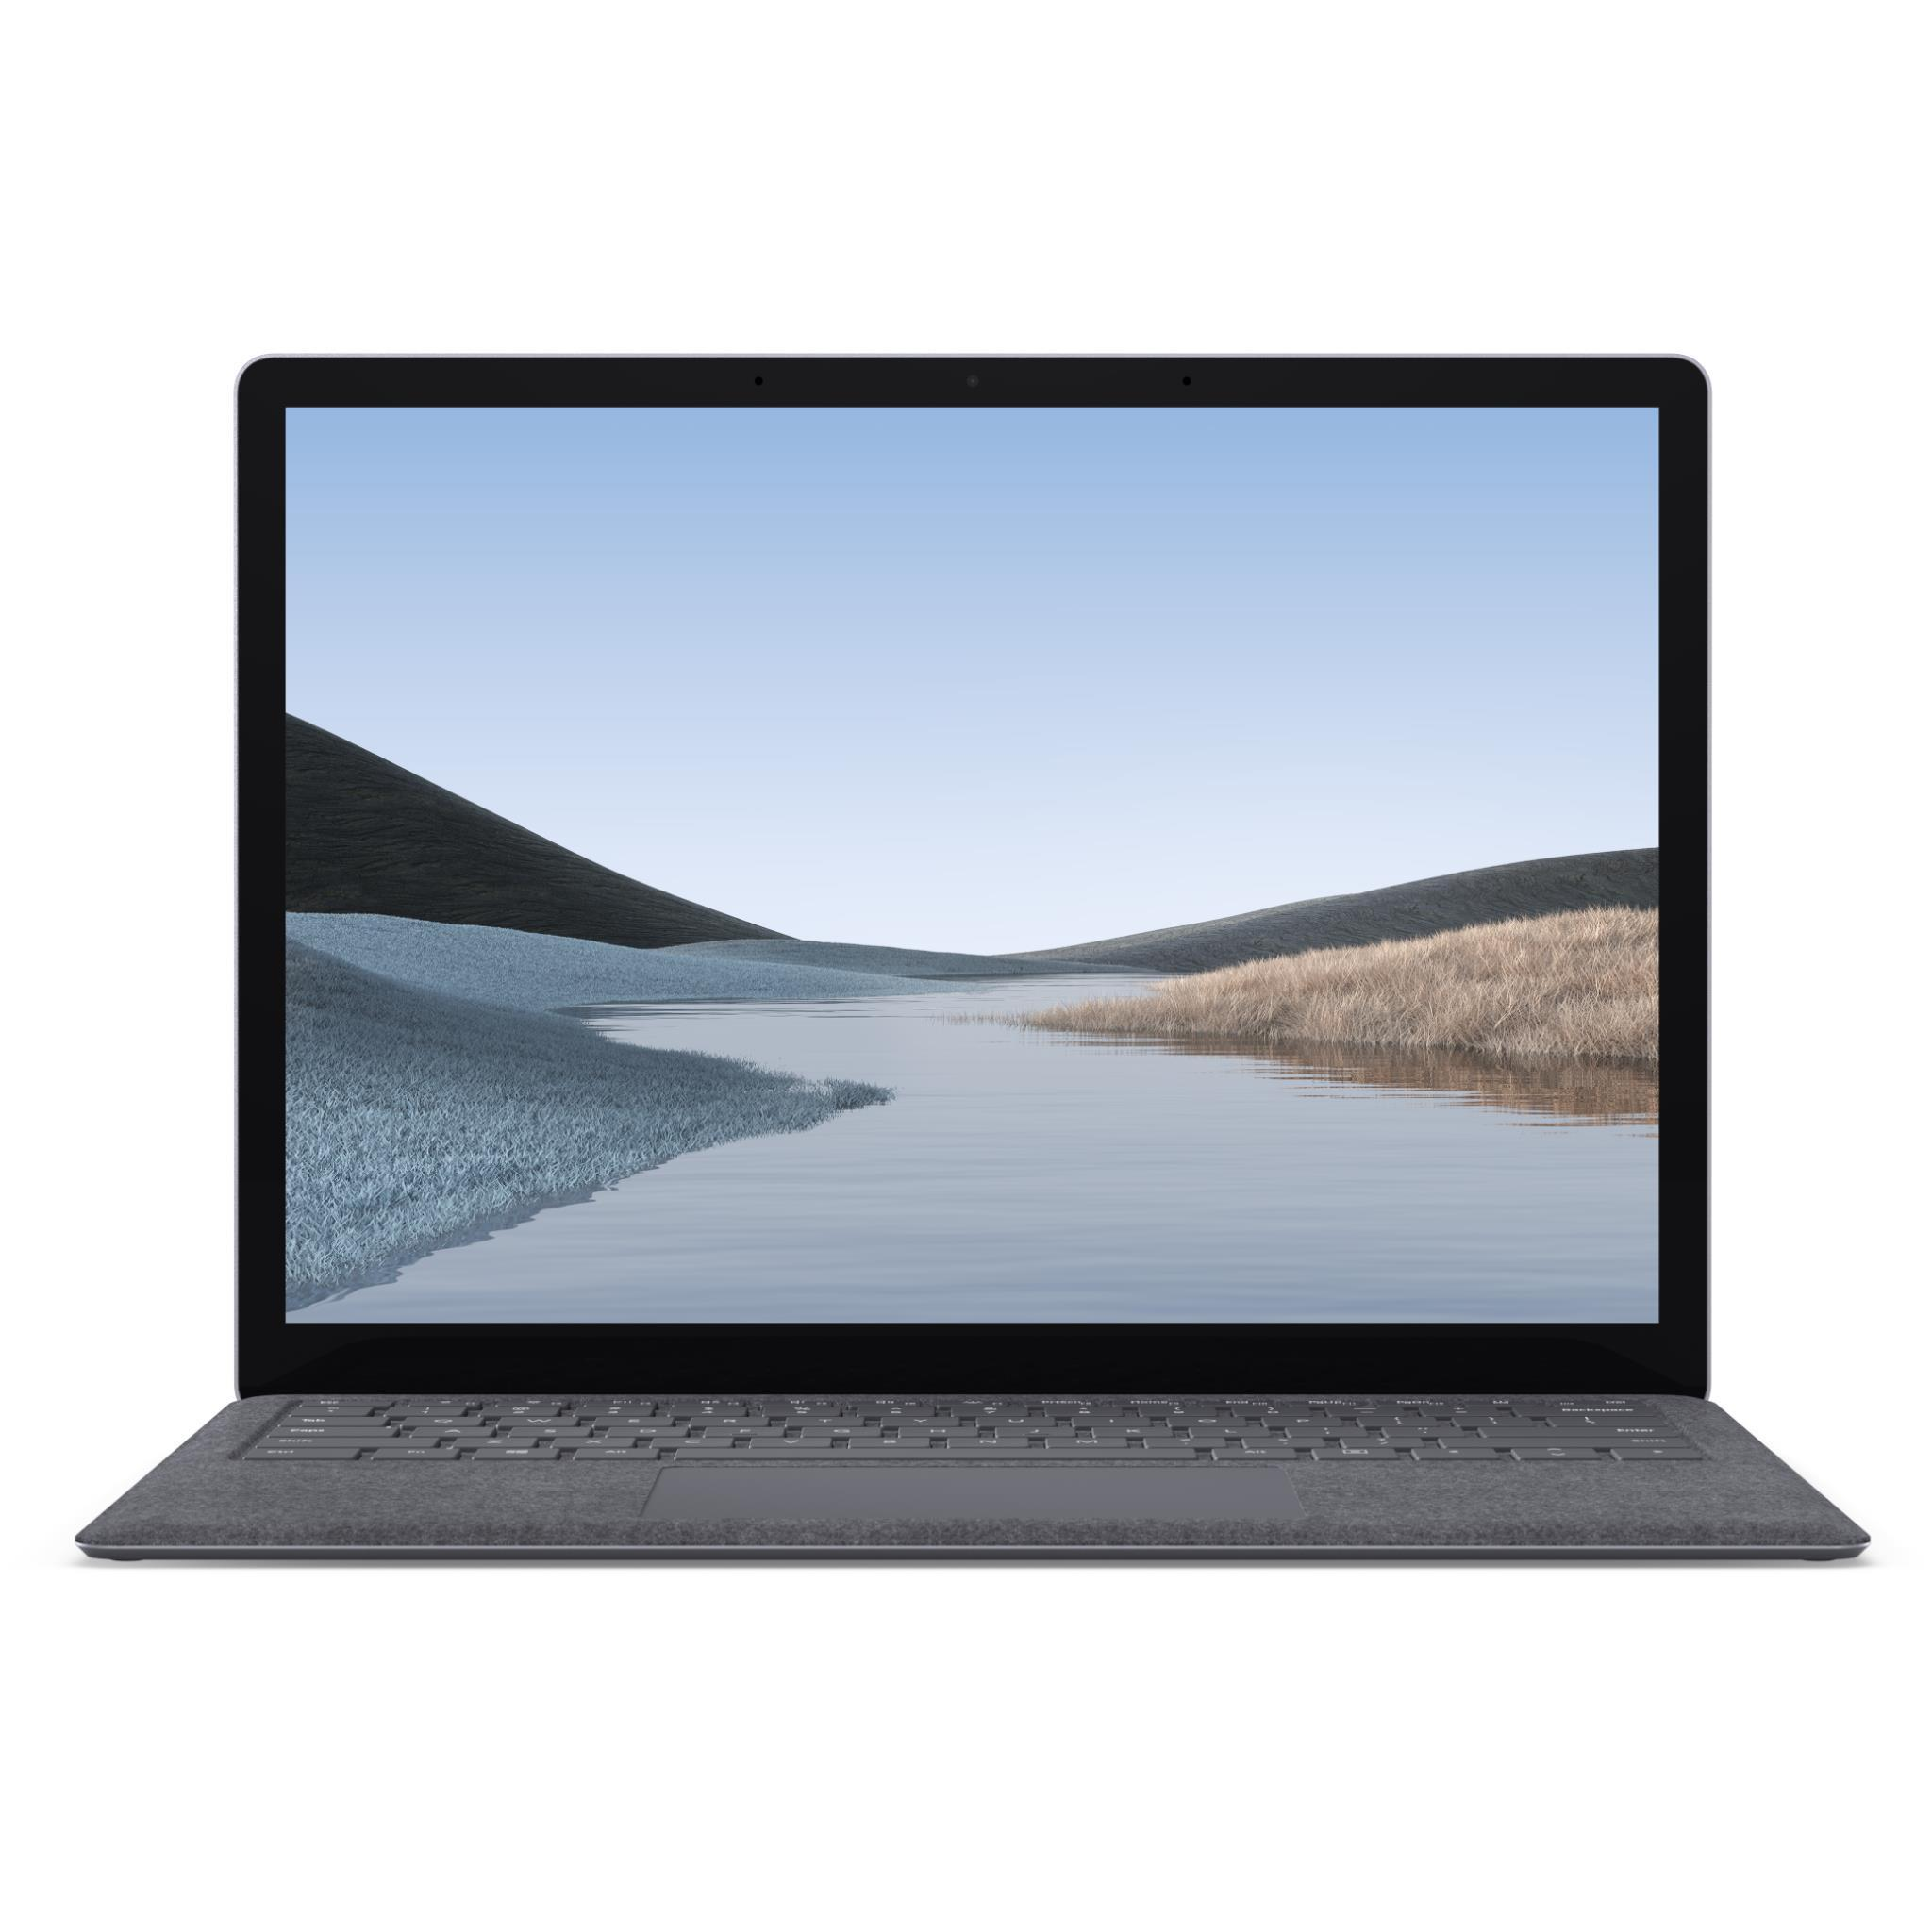 Microsoft Surface Laptop 3 13.5″ i5 256GB (Platinum)